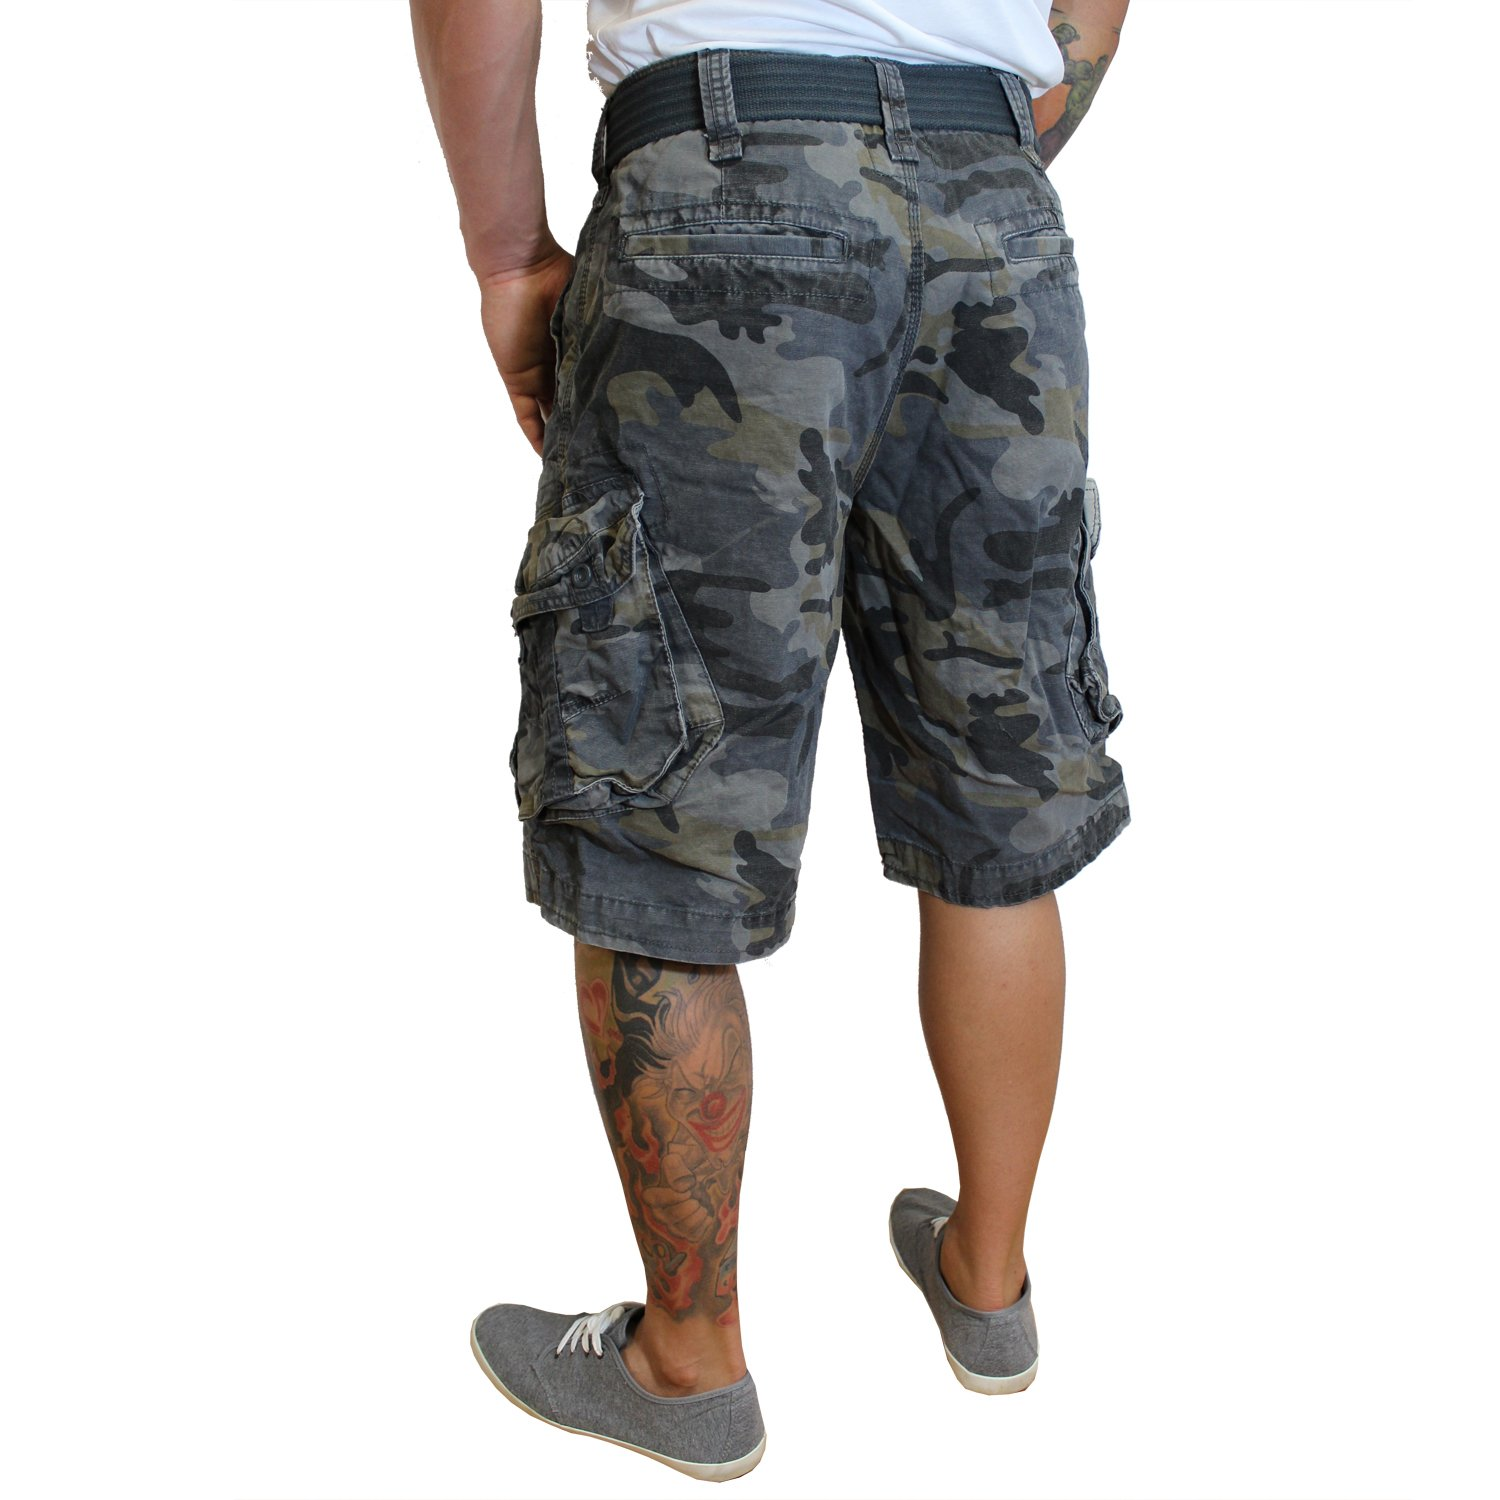 Jet Lag Jet Lag Shorts Take off 3 kurze Hose in charcoal cement schwarz  olive camouflage Shorts: Amazon.de: Bekleidung